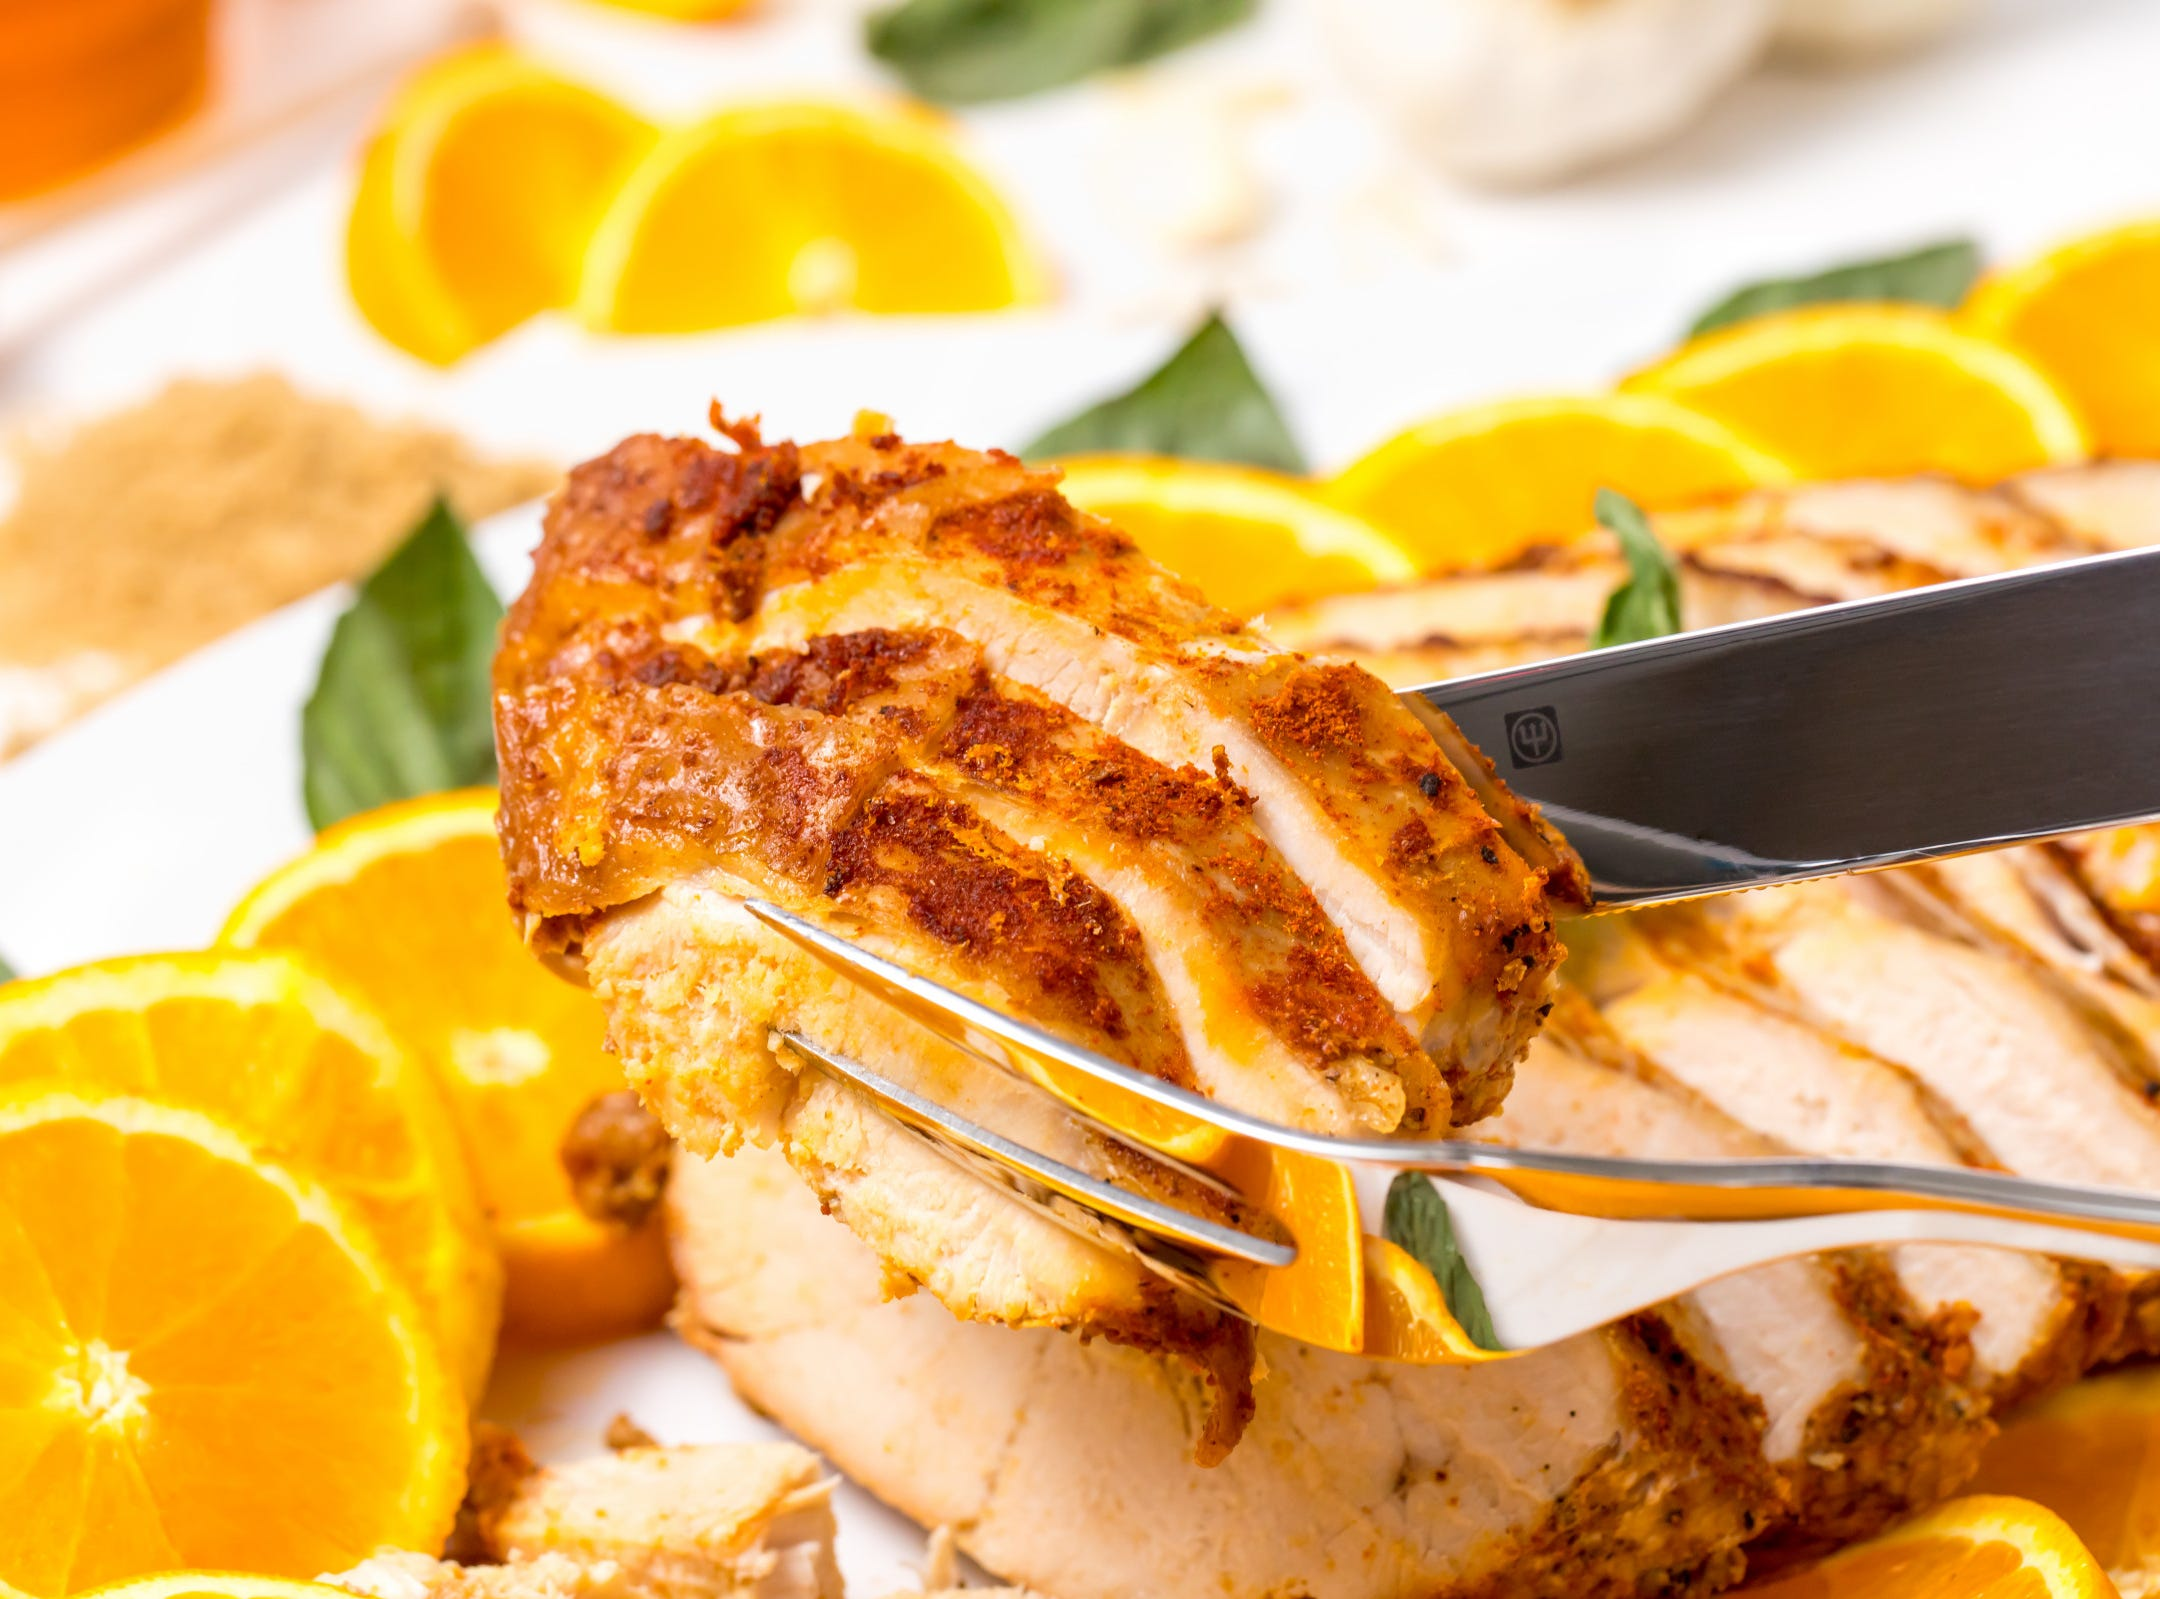 Looking for a simple yet succulent turkey recipe for Thanksgiving or Christmas? Our orange bourbon slow-cooker turkey breast, inspired by WhitneyBond, is a sumptuous holiday entree boasting mouthful after mouthful of sweet, spice and everything nice.